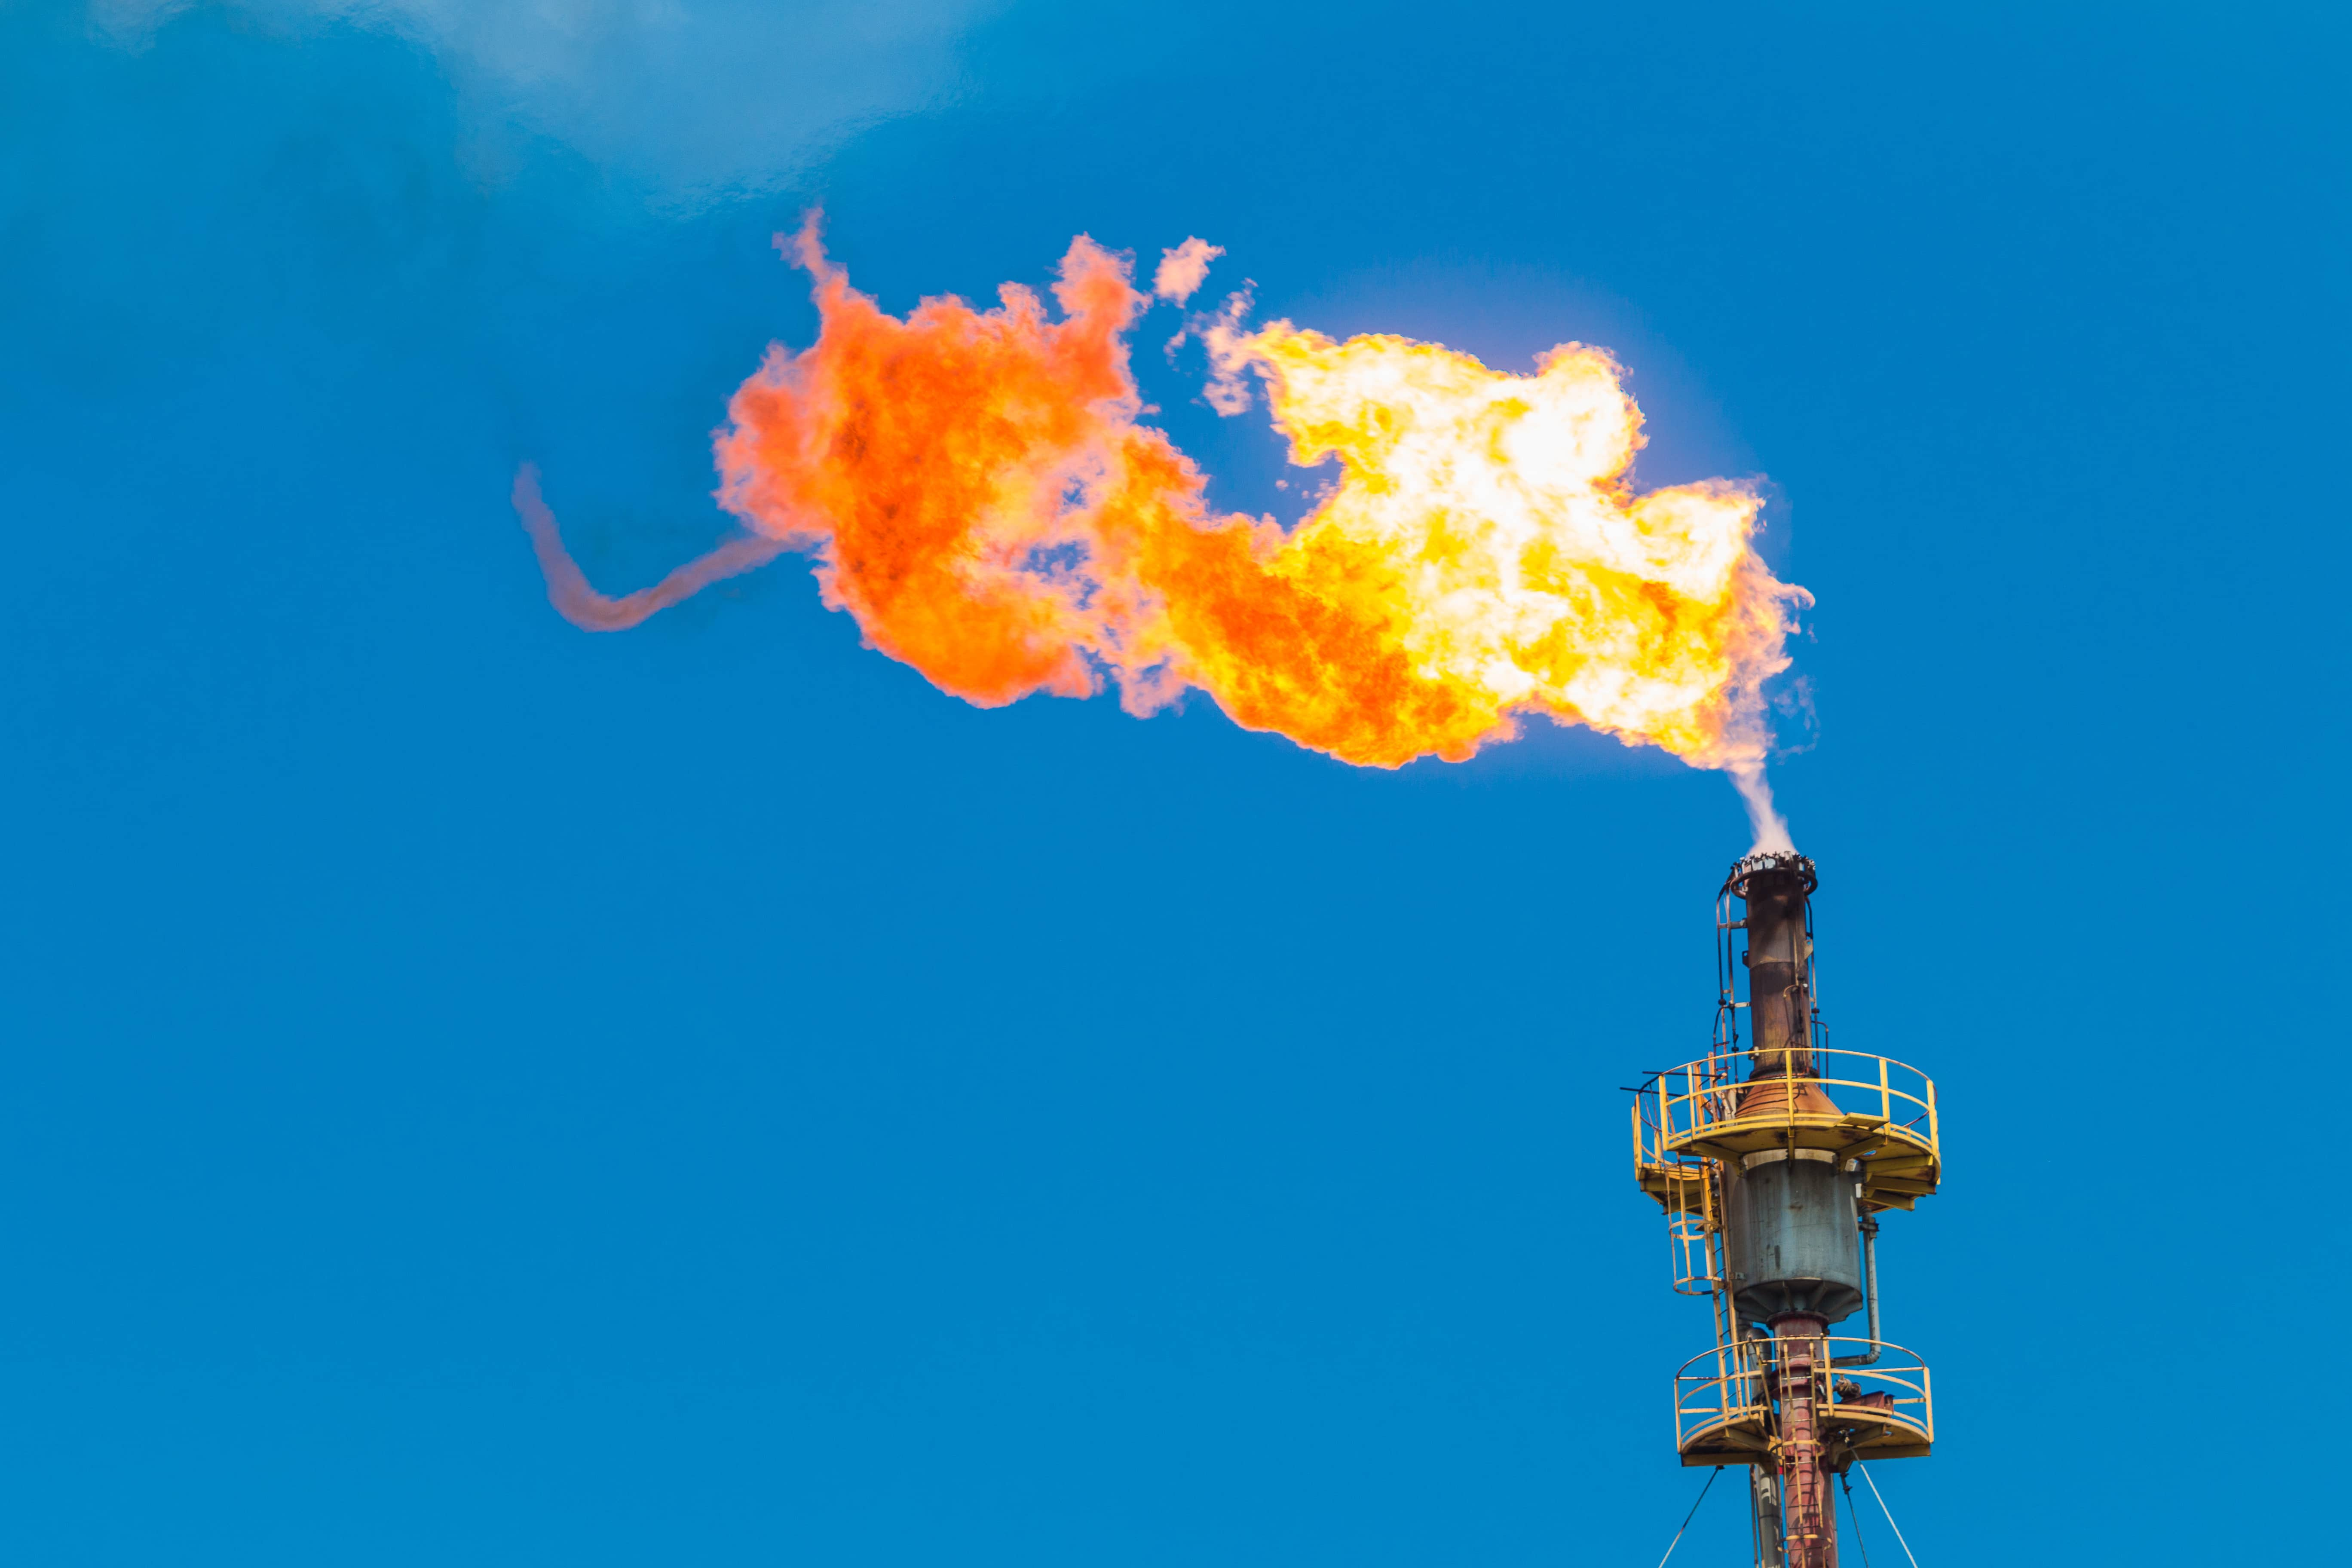 gas flare against blue sky